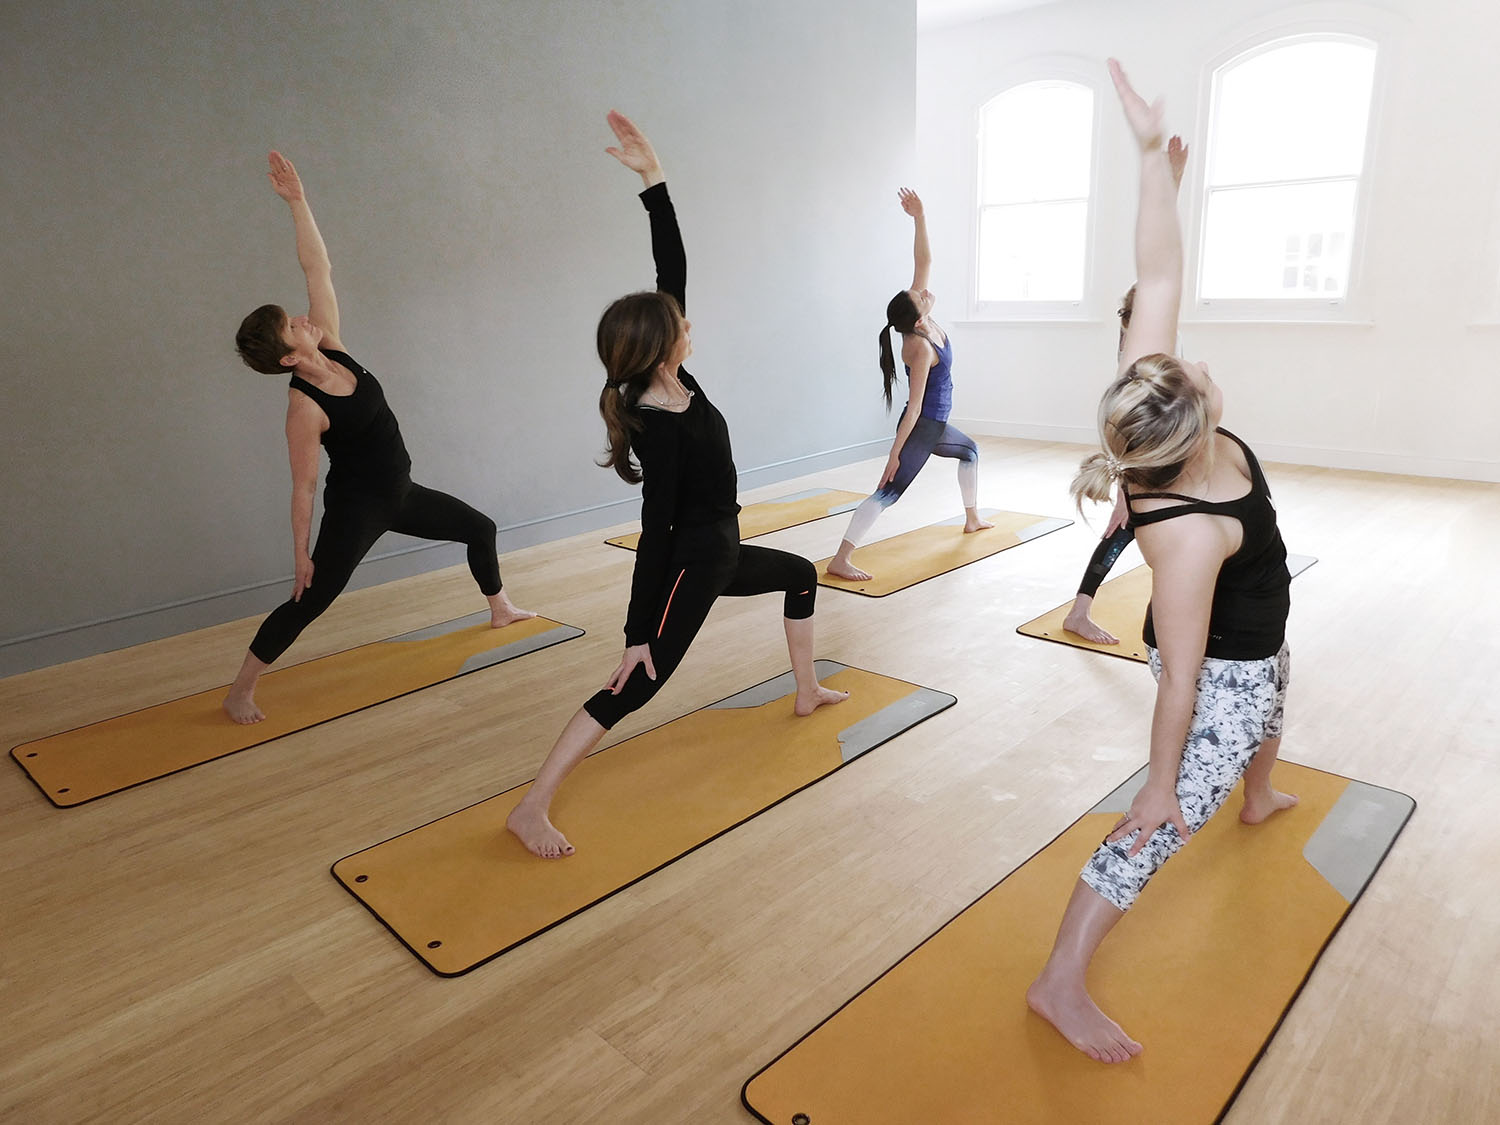 Paul Cashin Architects / New Energy Yoga Studio, Winchester, Hampshire